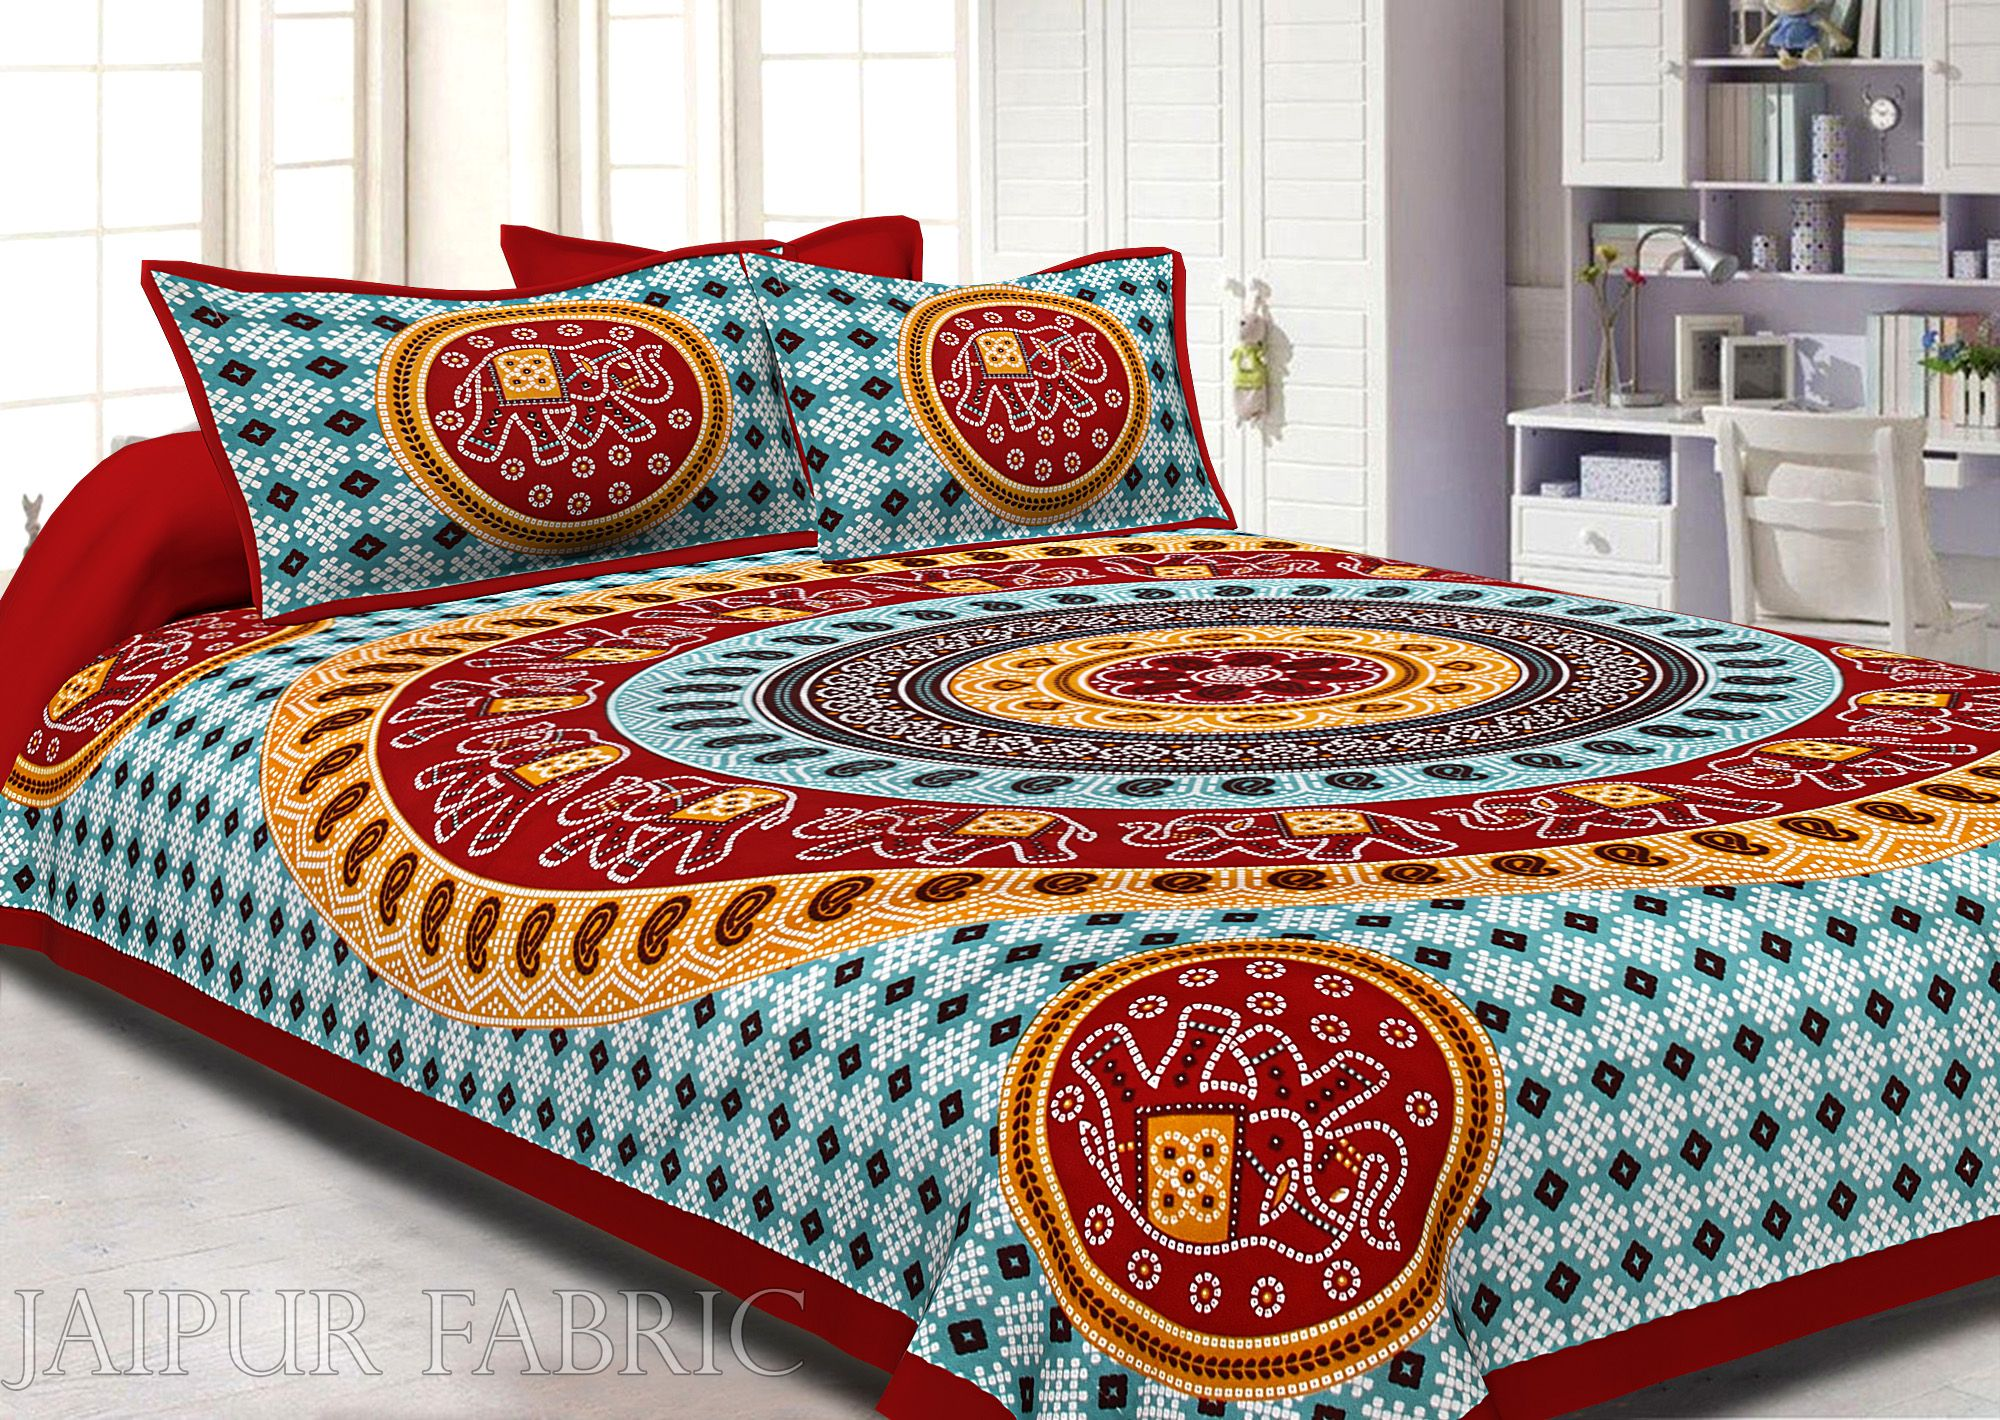 Red Border Jaipuri Rajasthani Bandhani Print Cotton Double Bed Sheet